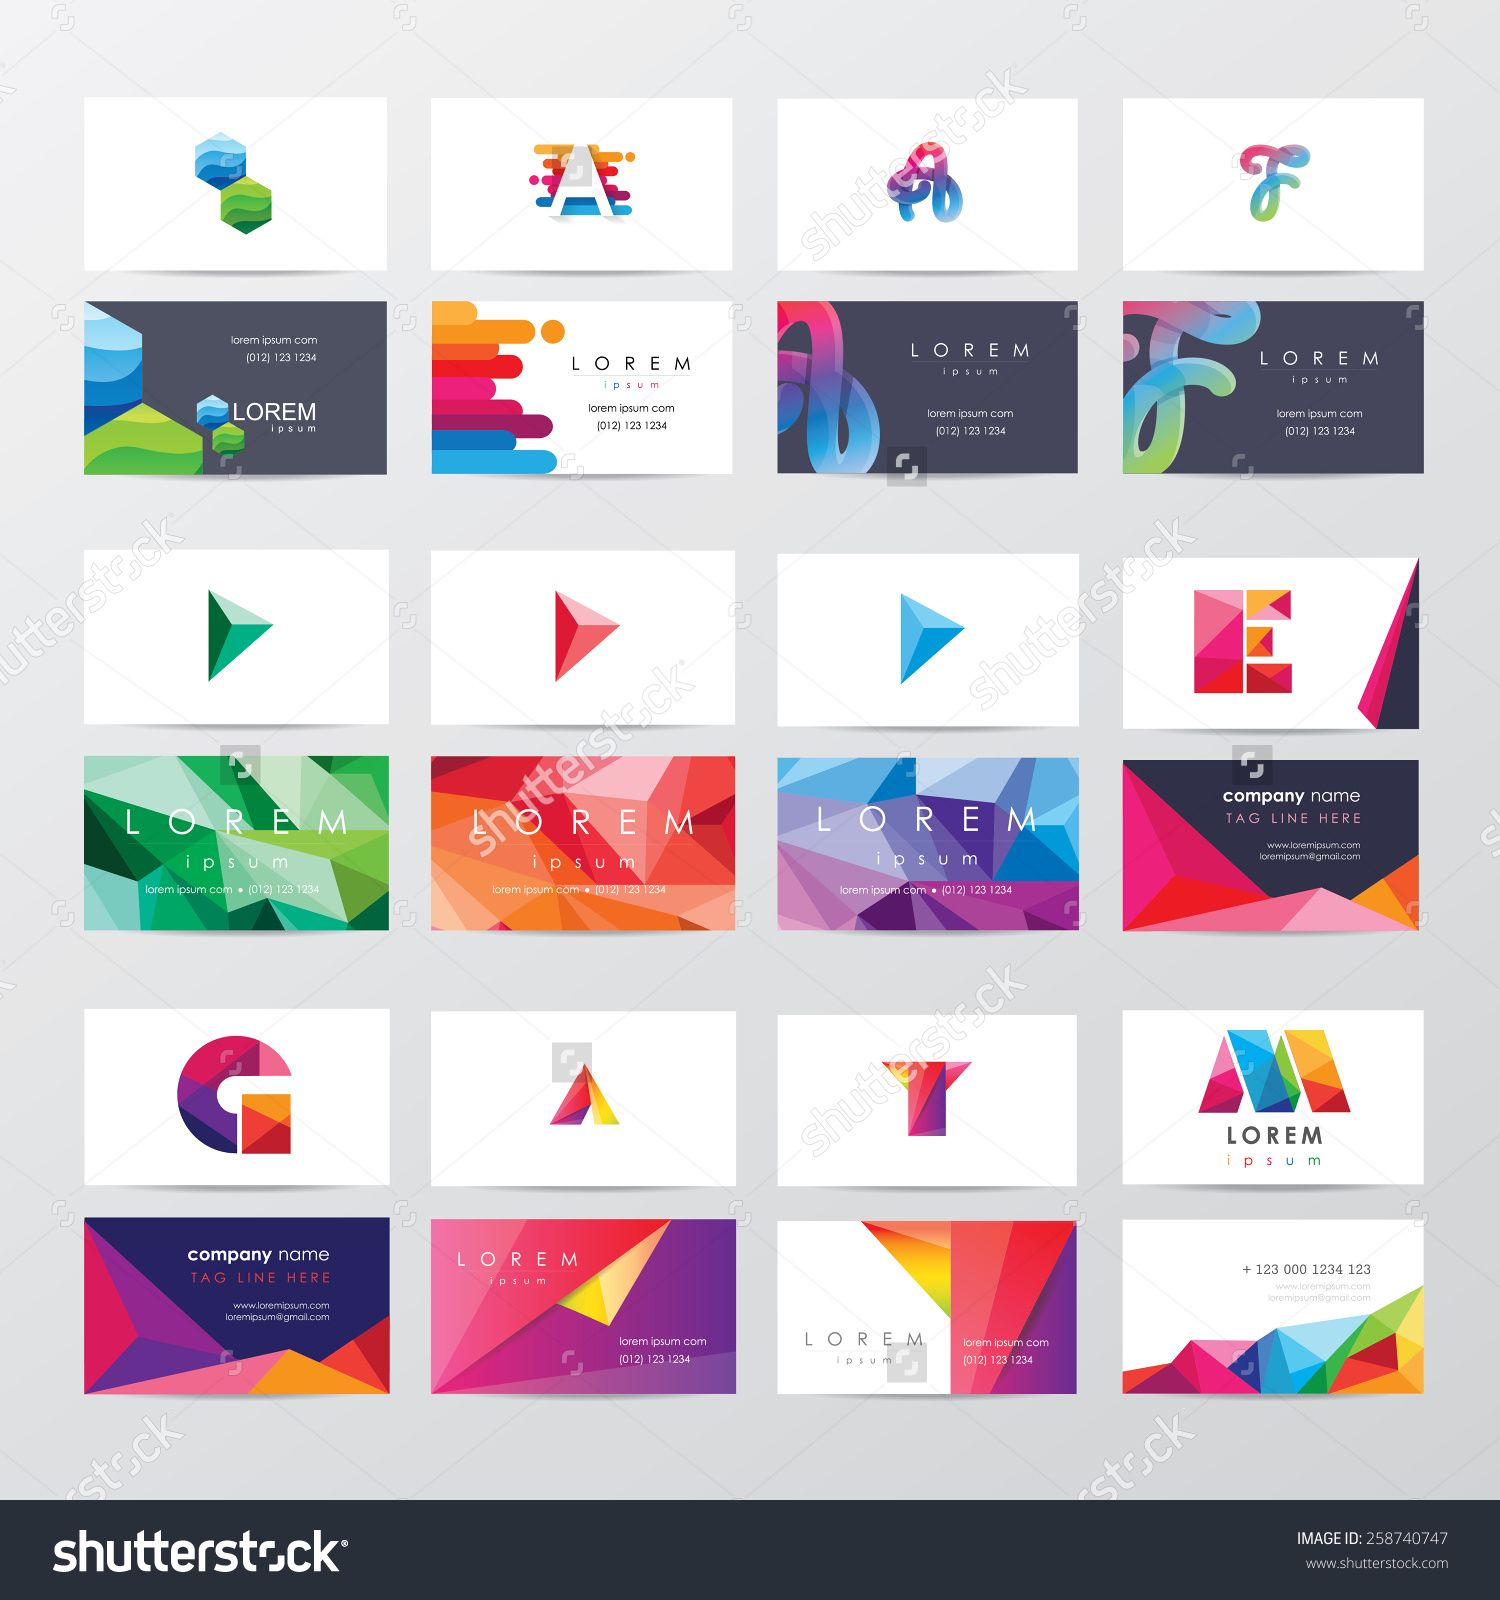 Large collection of colorful business card template designs with large collection of colorful business card template designs with logo icons for business visual identity magicingreecefo Gallery